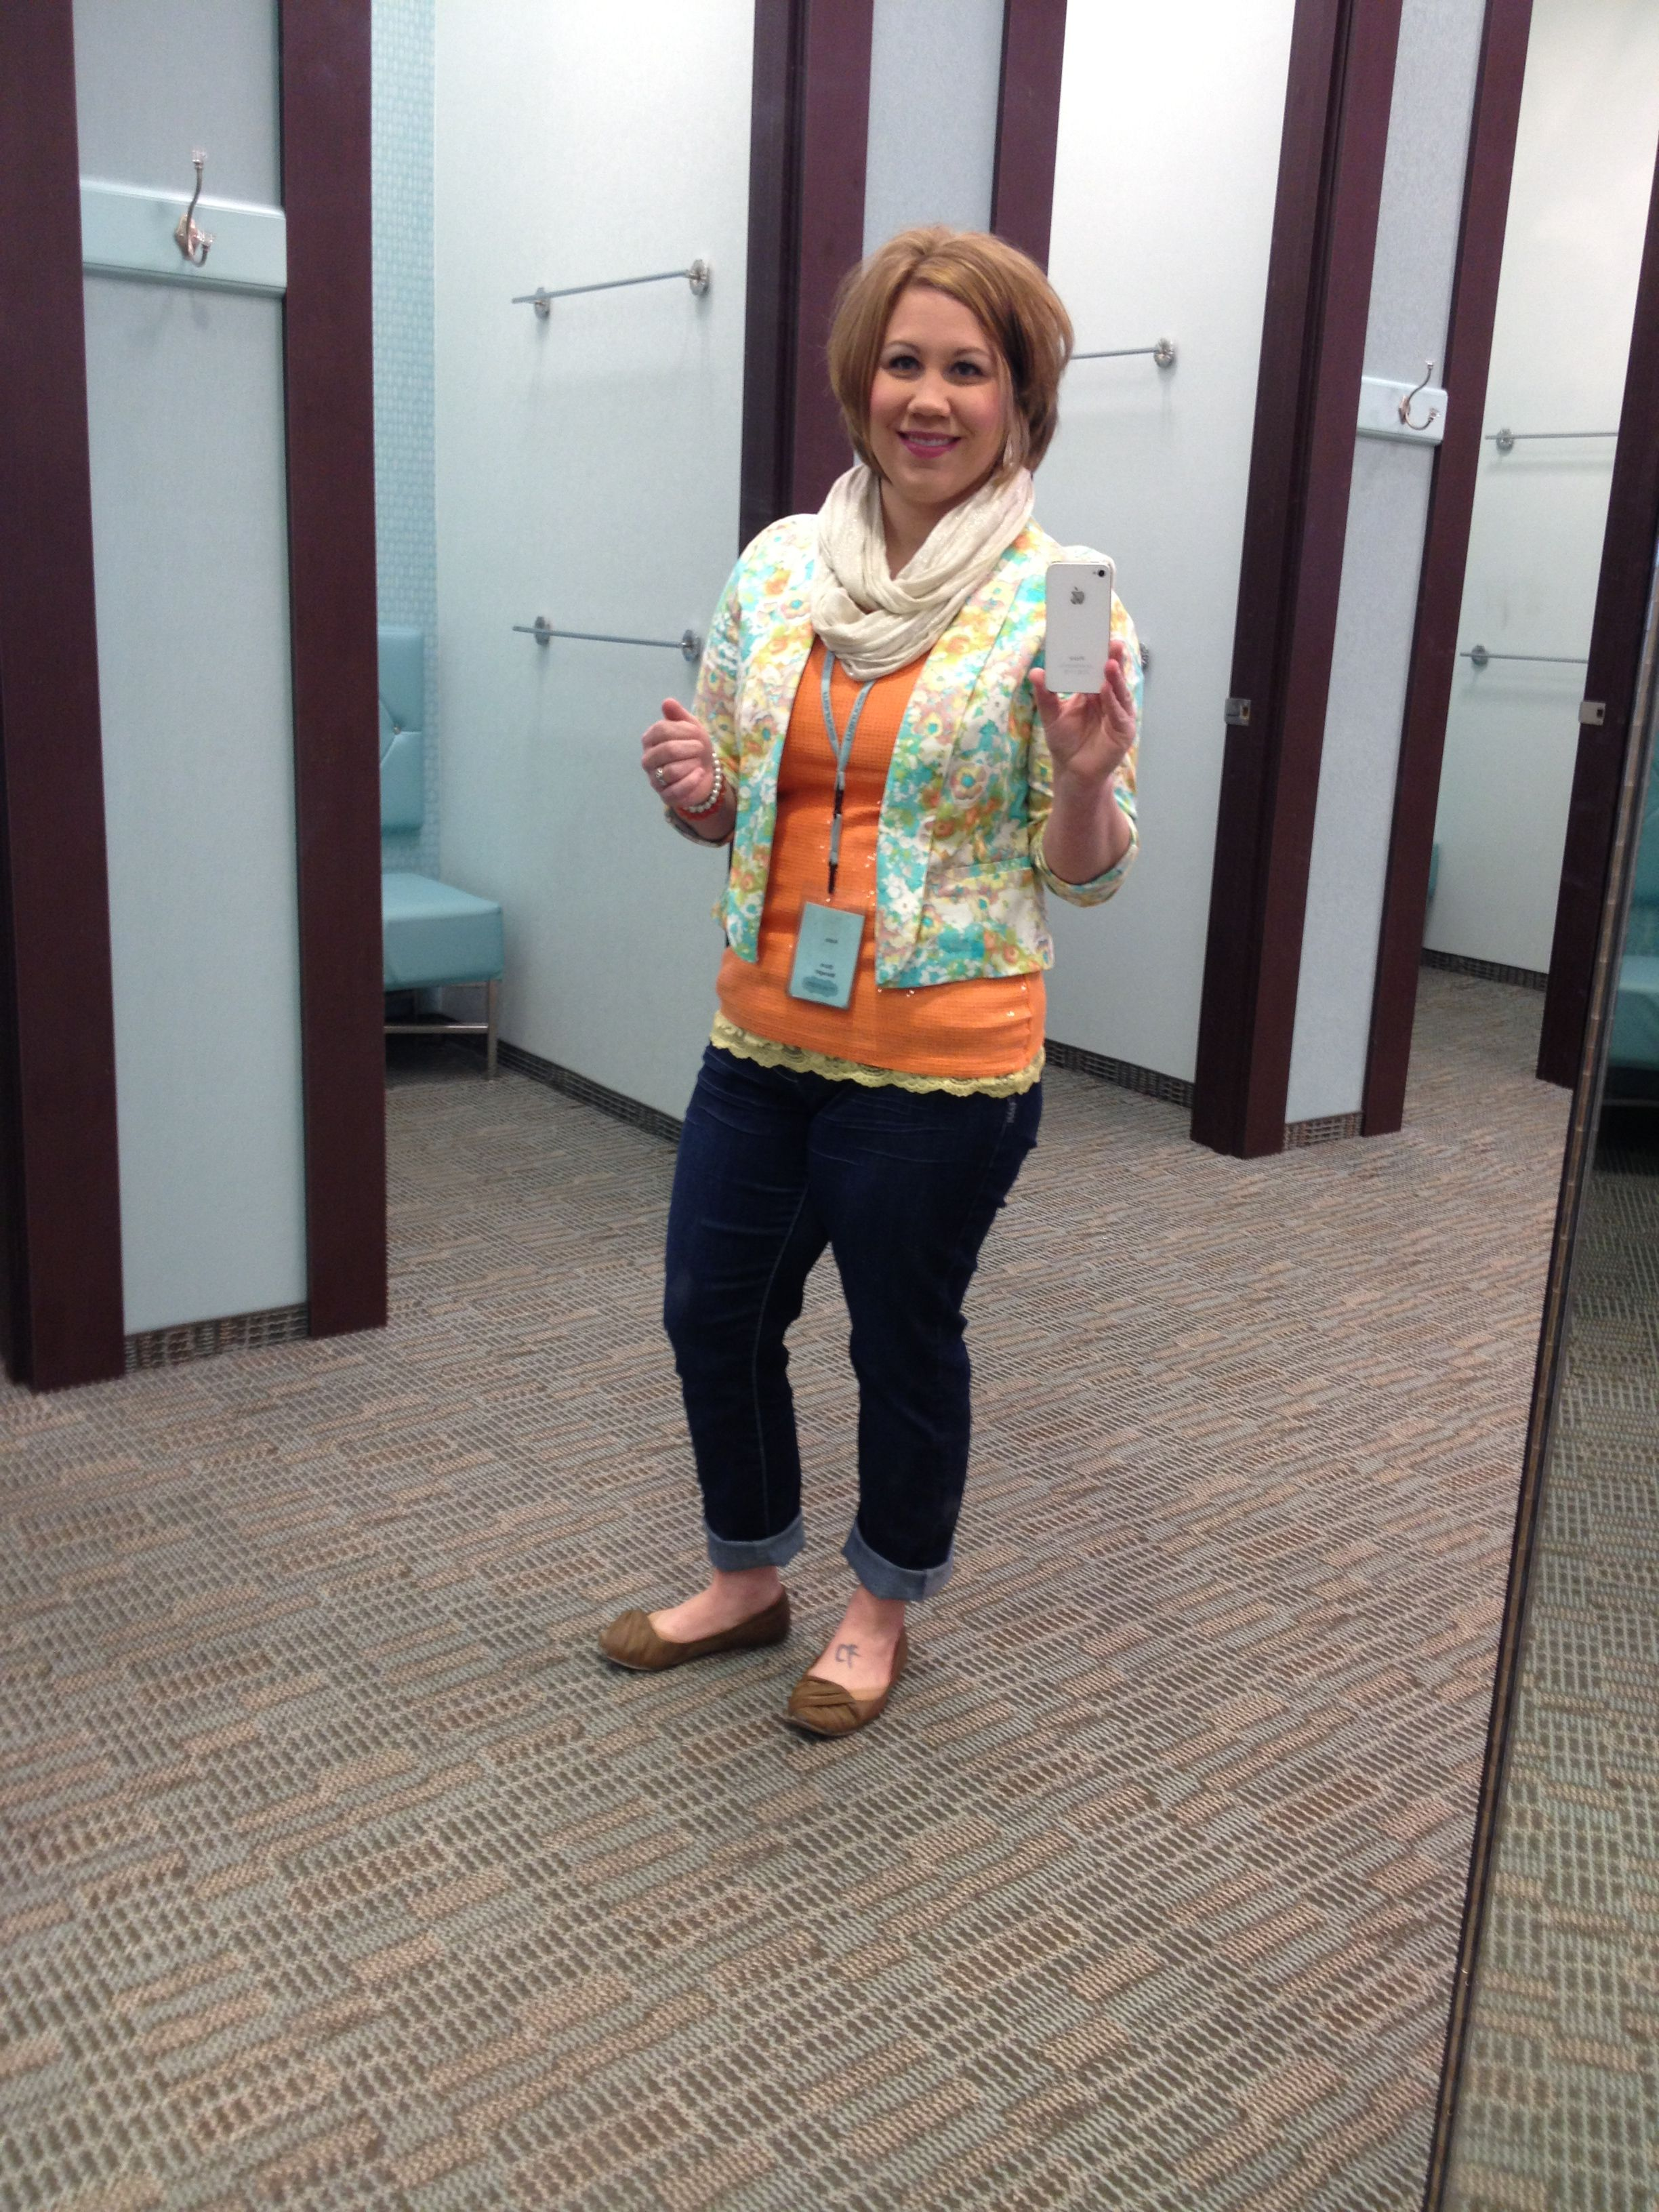 Rocking out the floral blazer! :-) #maurices